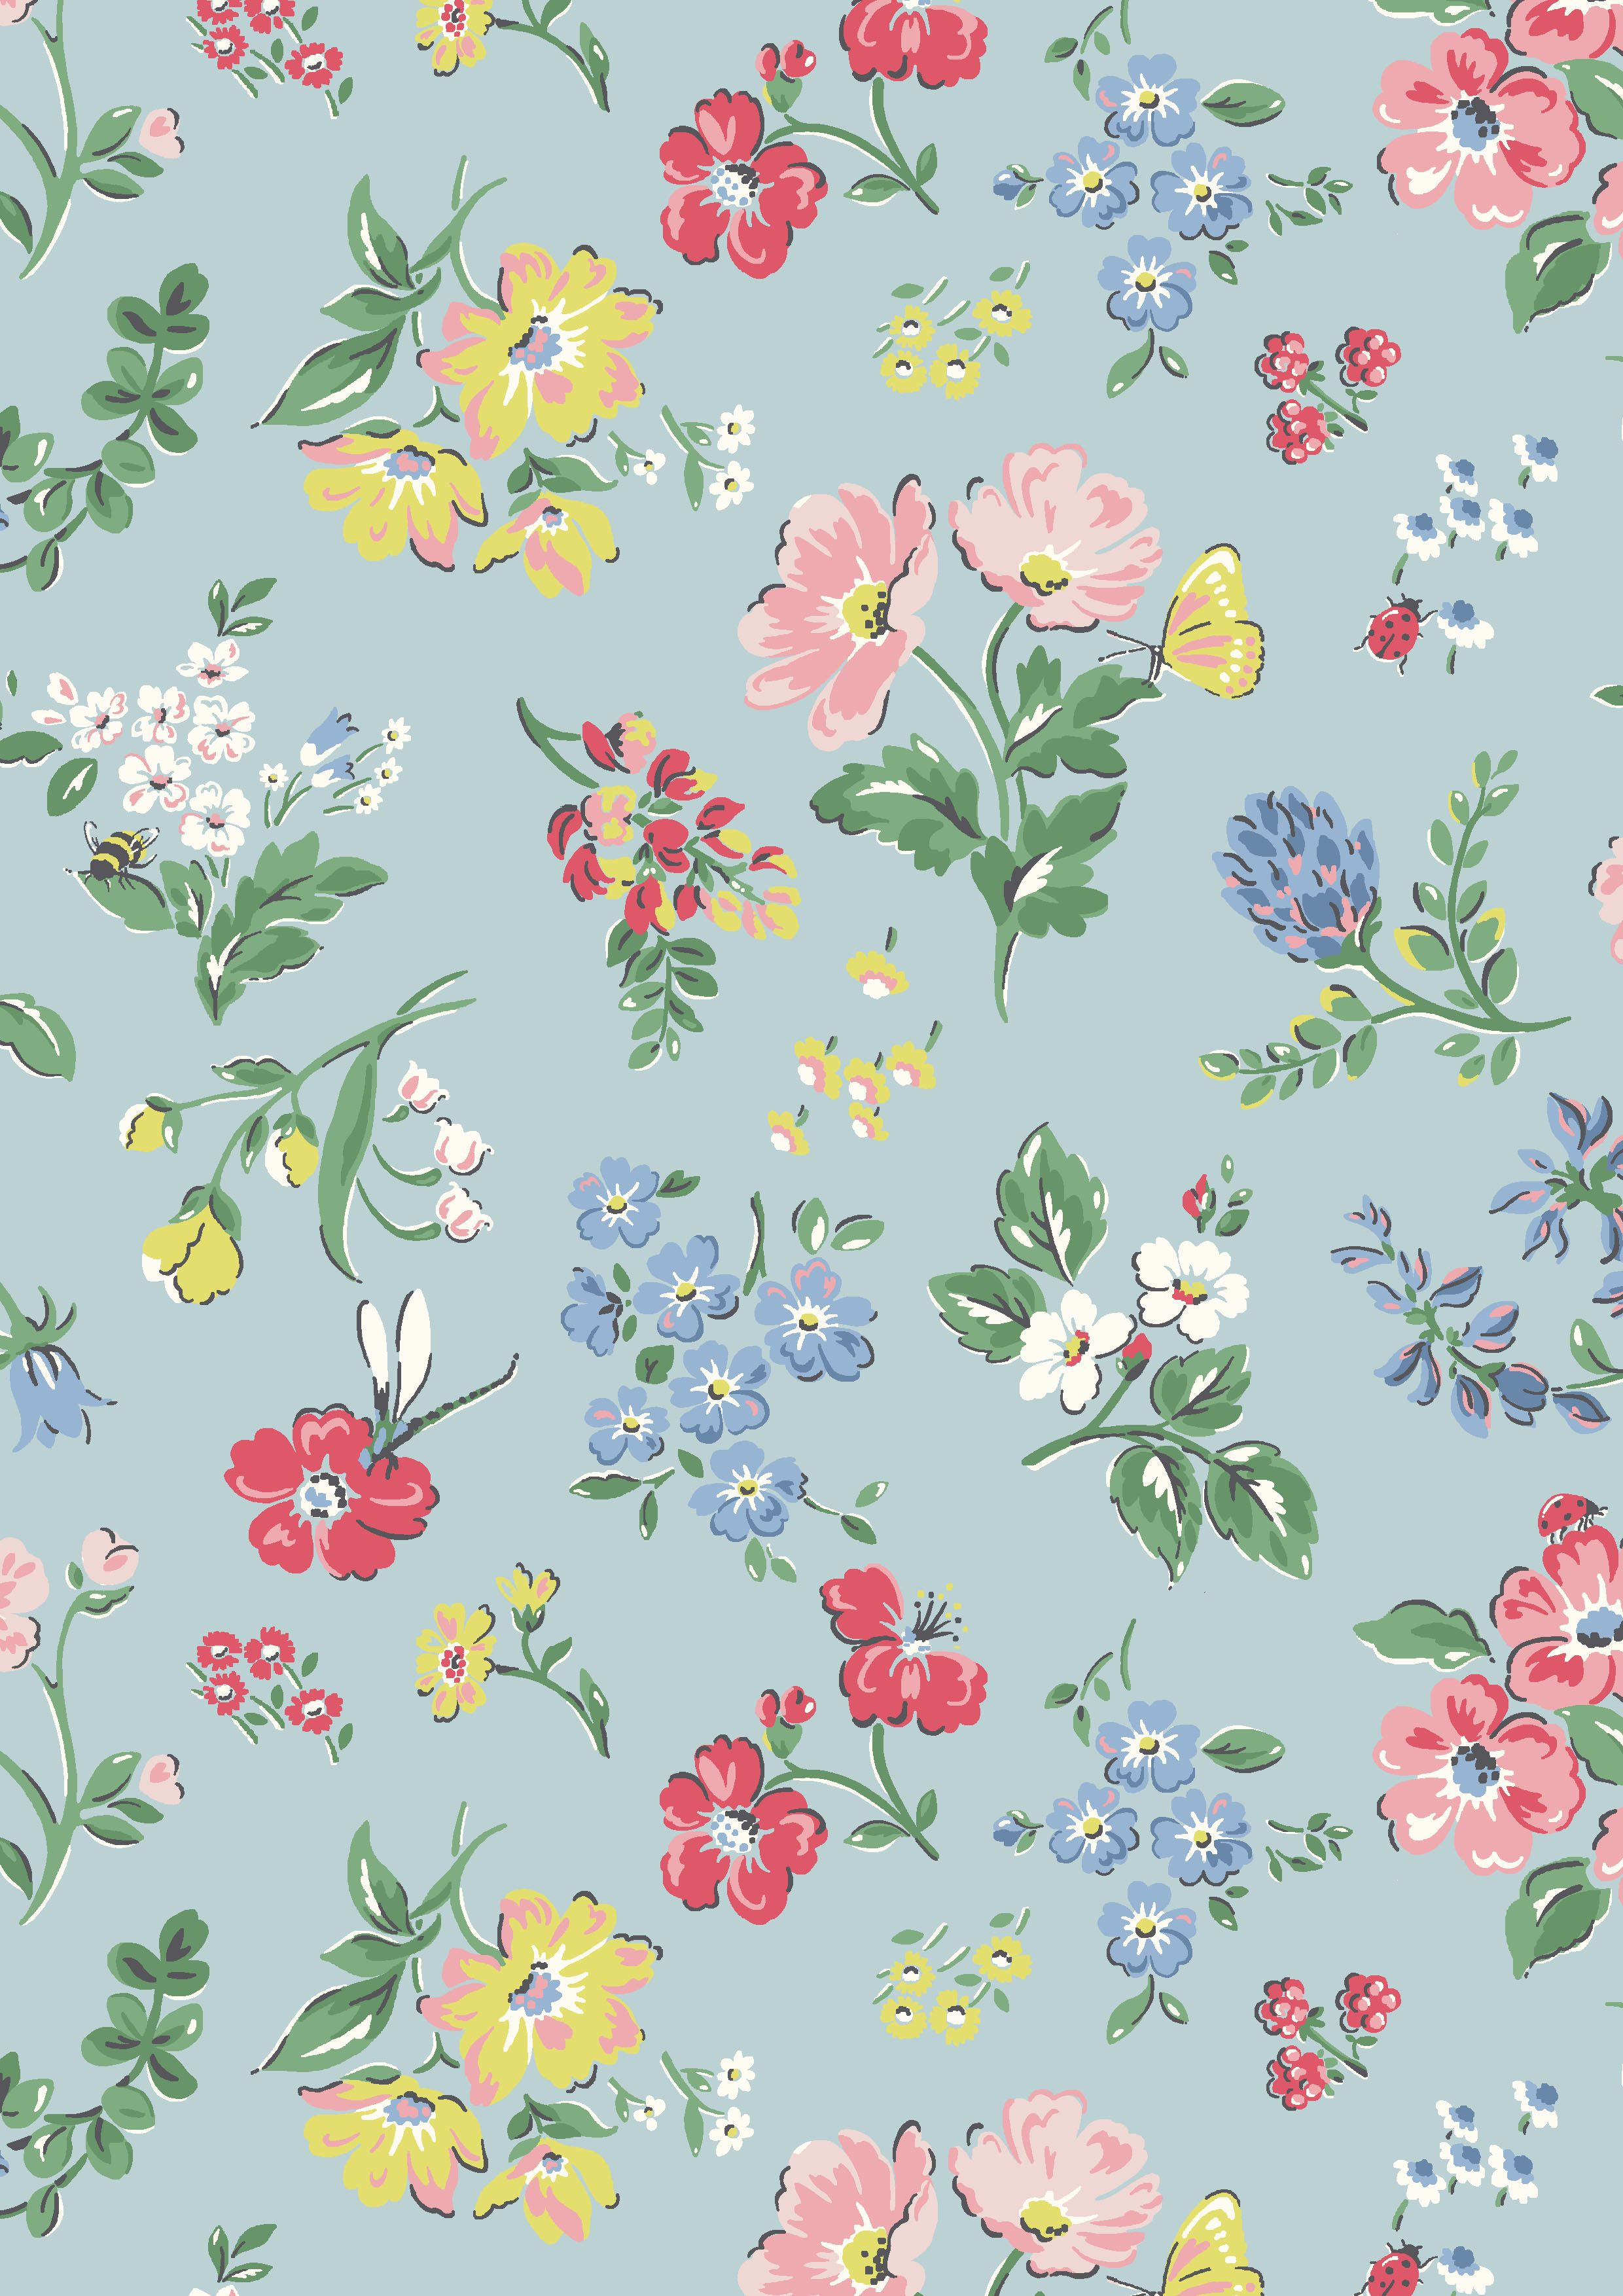 Introducing Meadow Print Floral Prints Print Wallpaper Cath